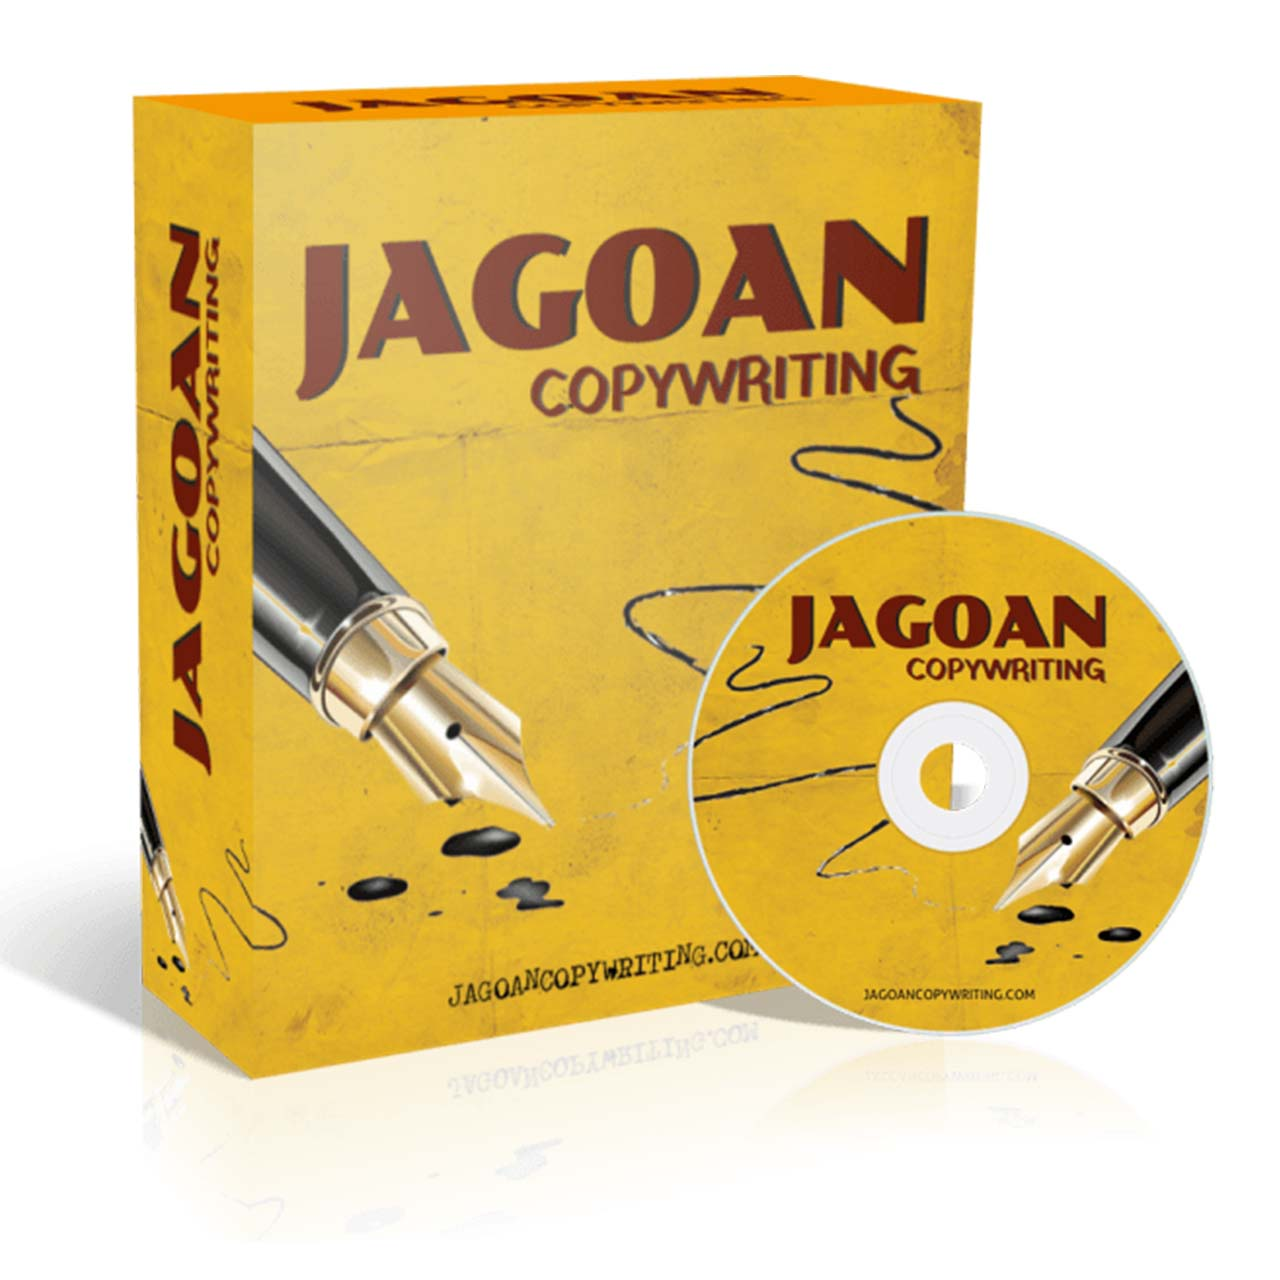 Jagoan Copywriting